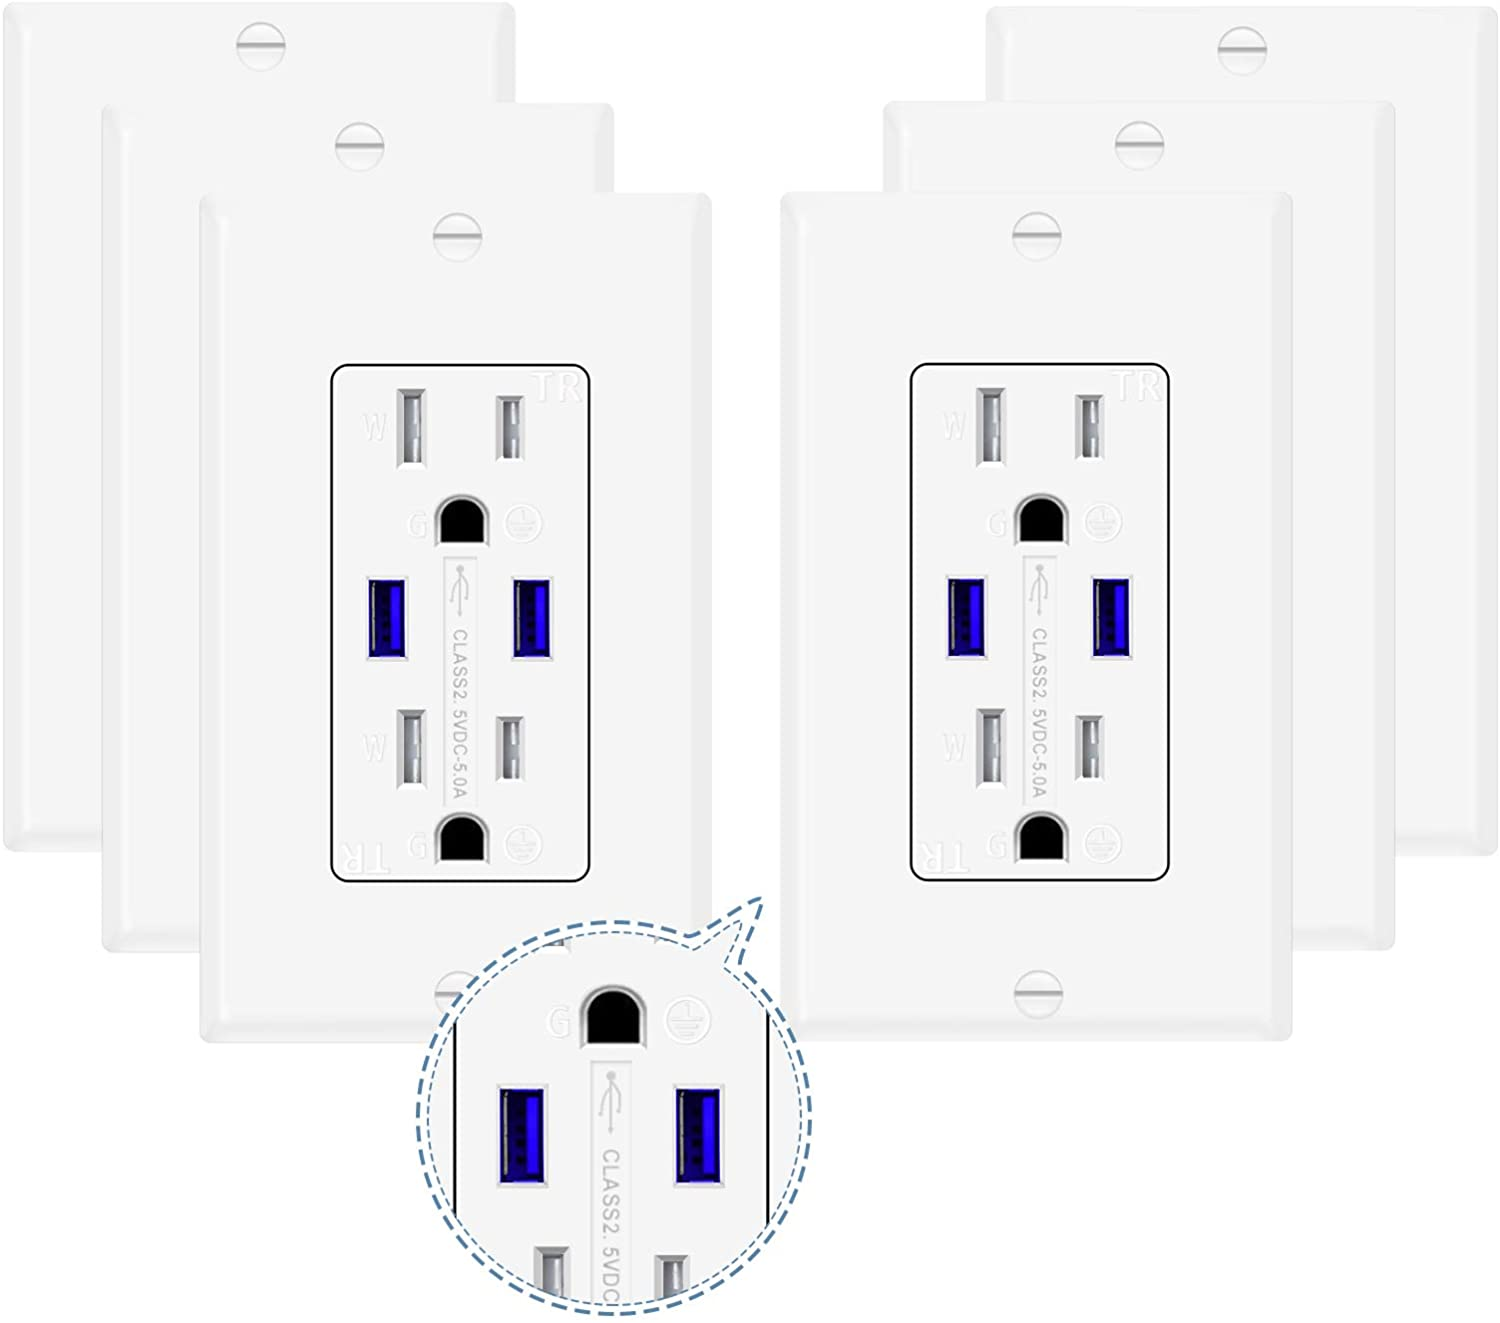 6 Pack Outlets with USB 5 Amp, Electrical Wall Outlets with High Speed Dual Type-A Ports,110V 15A Tamper-Resistant Duplex Receptacles Plugs for Home Interior